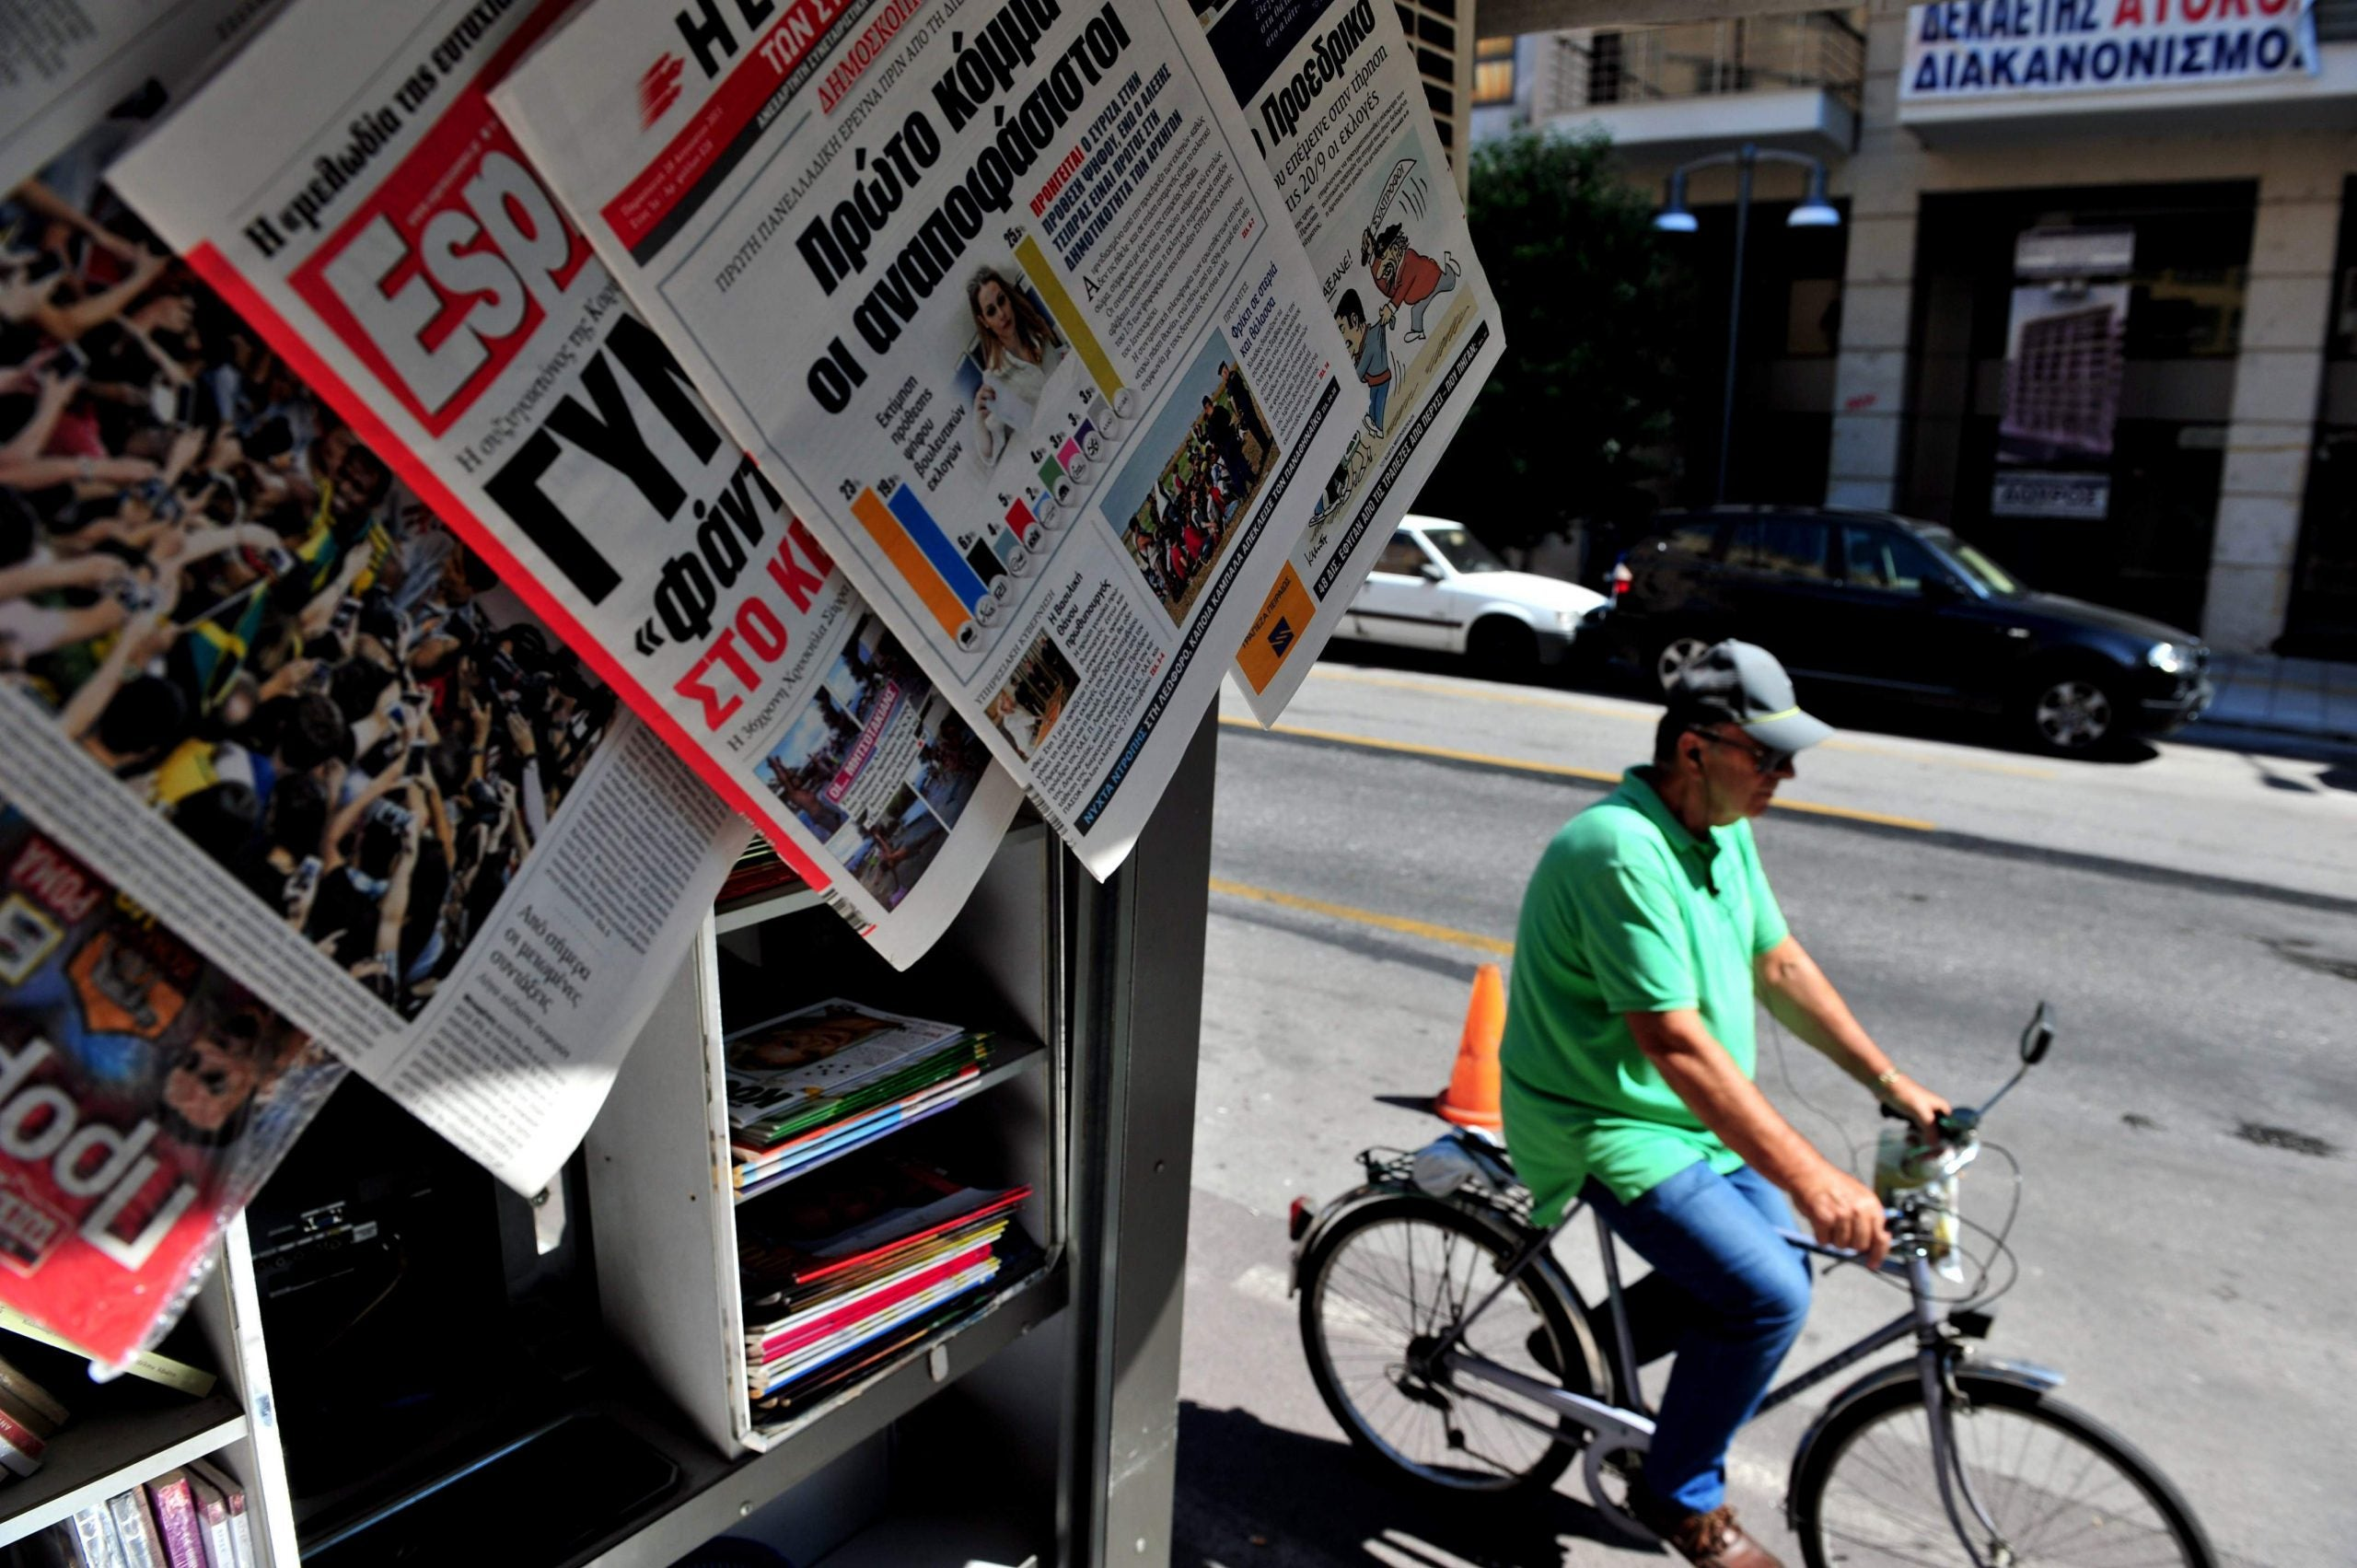 A view from Athens: anger, cynicism and indecision over Alexis Tsipras' snap elections